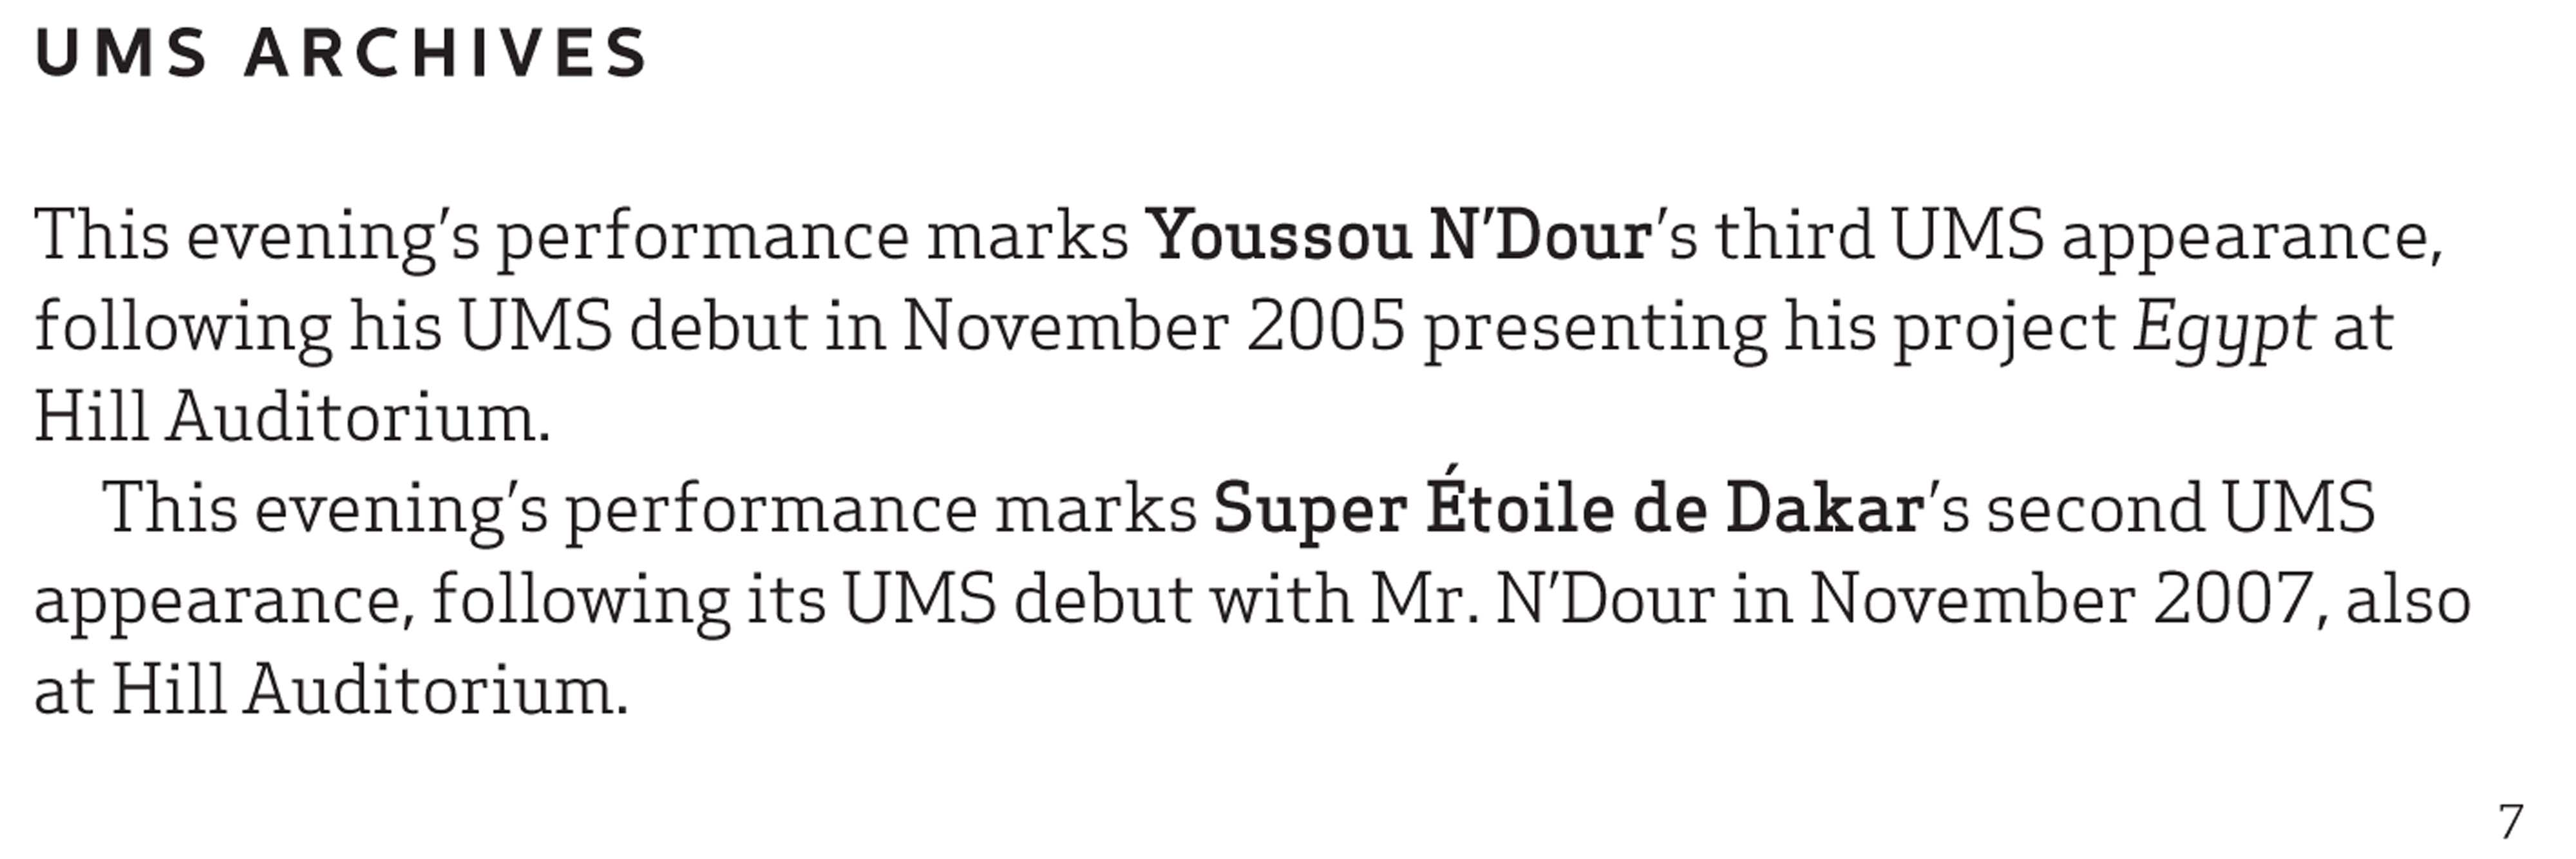 UMS Concert Program, November 14, 2015 - Youssou N'Dour and Super Étoile de Dakar image